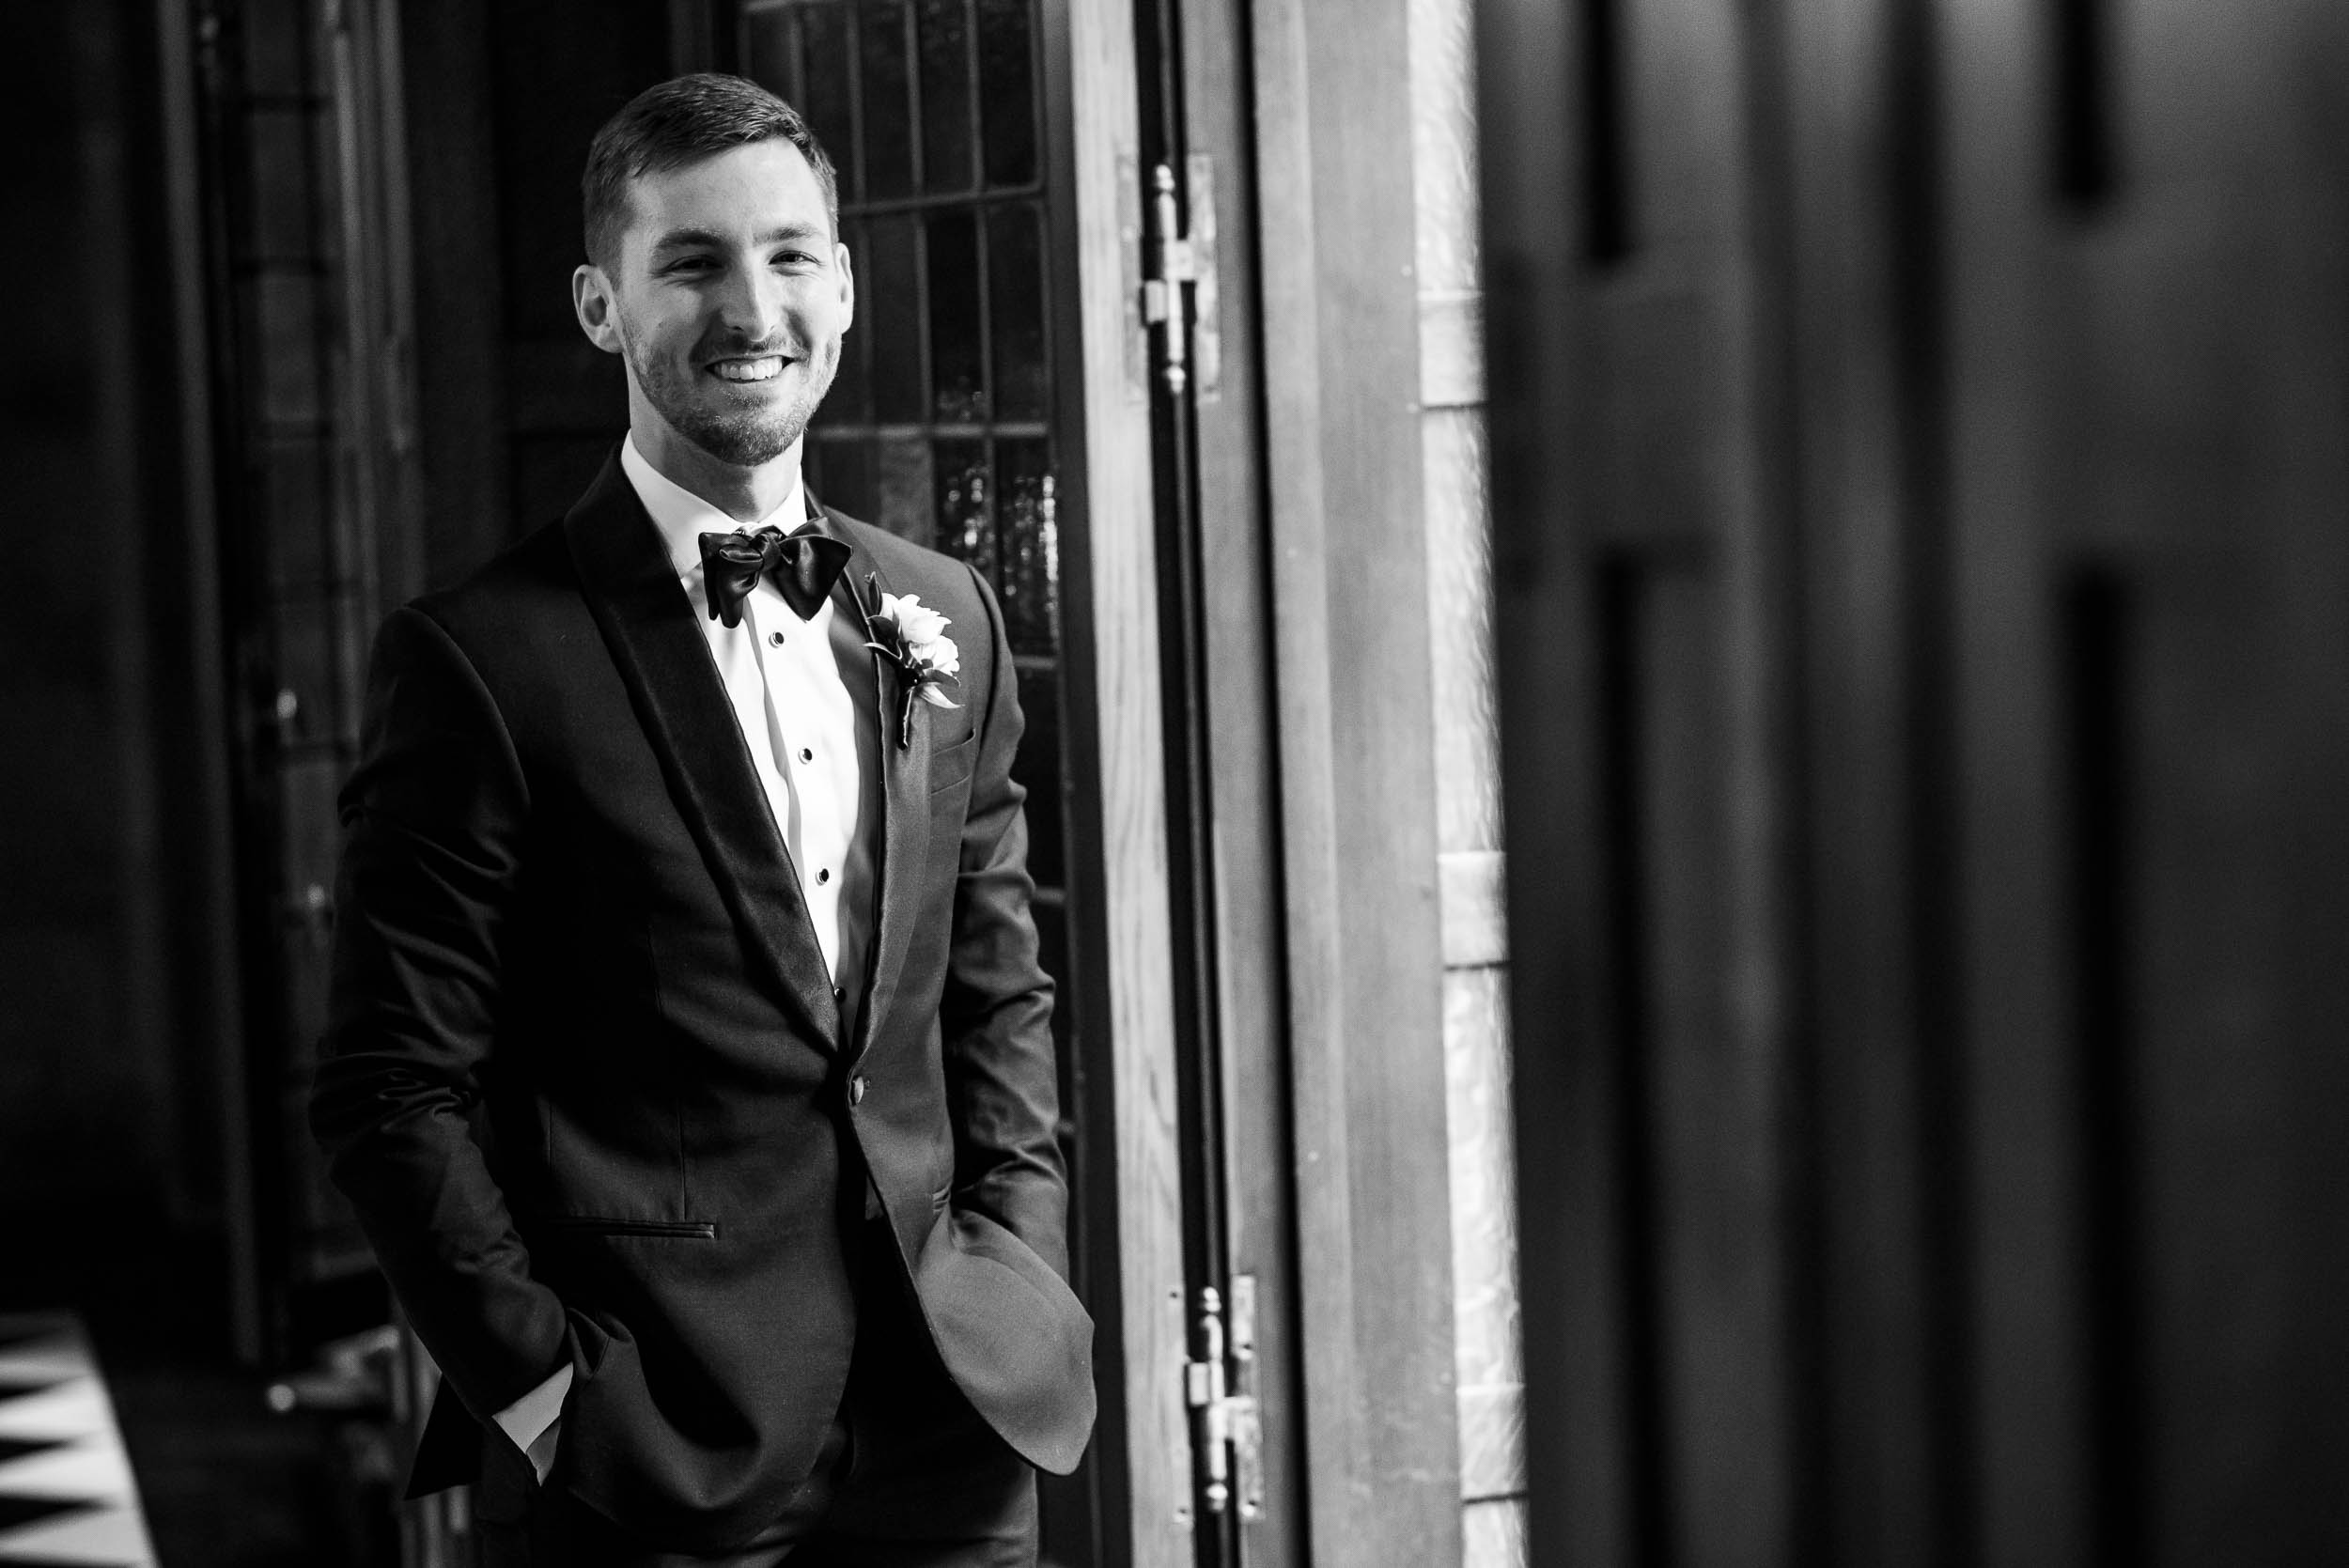 Groom ready for the ceremony during a Blackstone Chicago wedding.